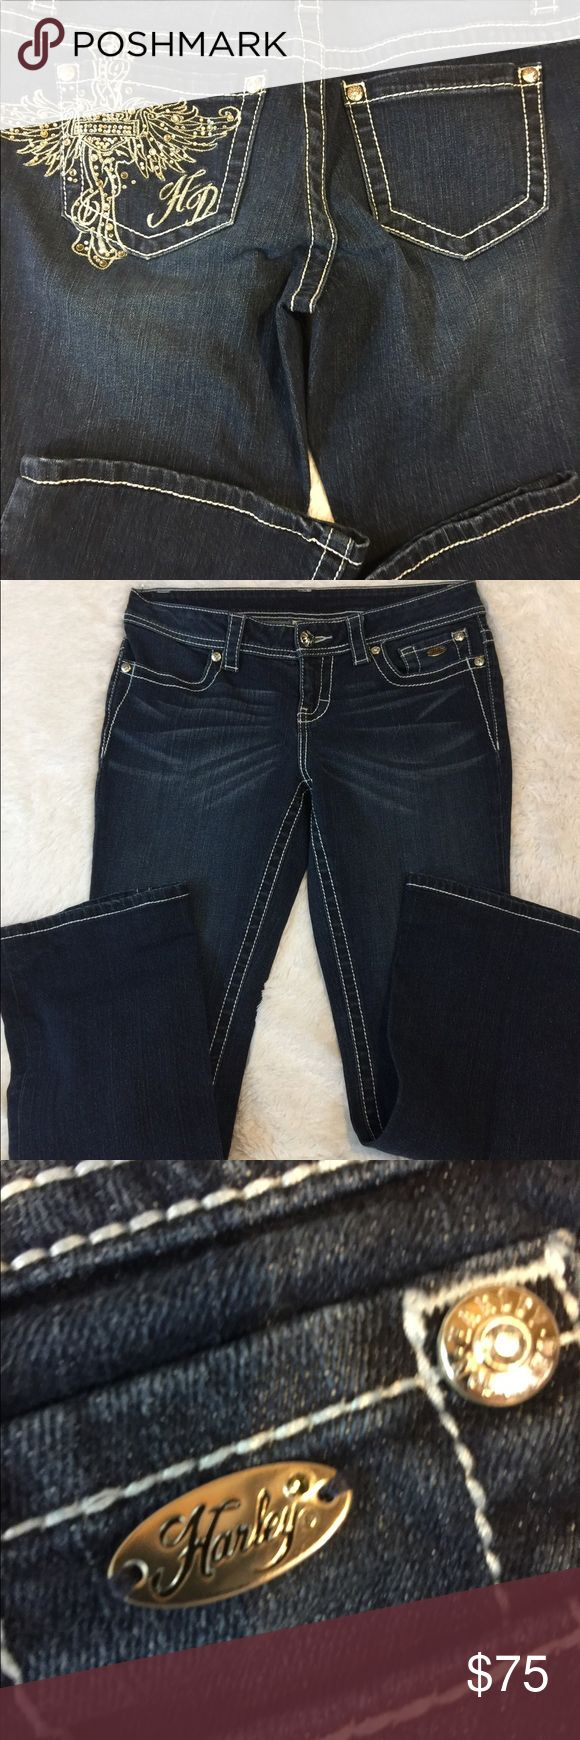 Harley Davidson Jeans Awesome Harley Davidson jeans, serious back pocket bling.  Size 6, W 33. L 29.. as you can see in the last picture these were hemmed, about 2-2.5 inches,so the inseam can be as long as 31-32 if hem is removed.  No pets/smoke closet. Harley-Davidson Jeans Boot Cut